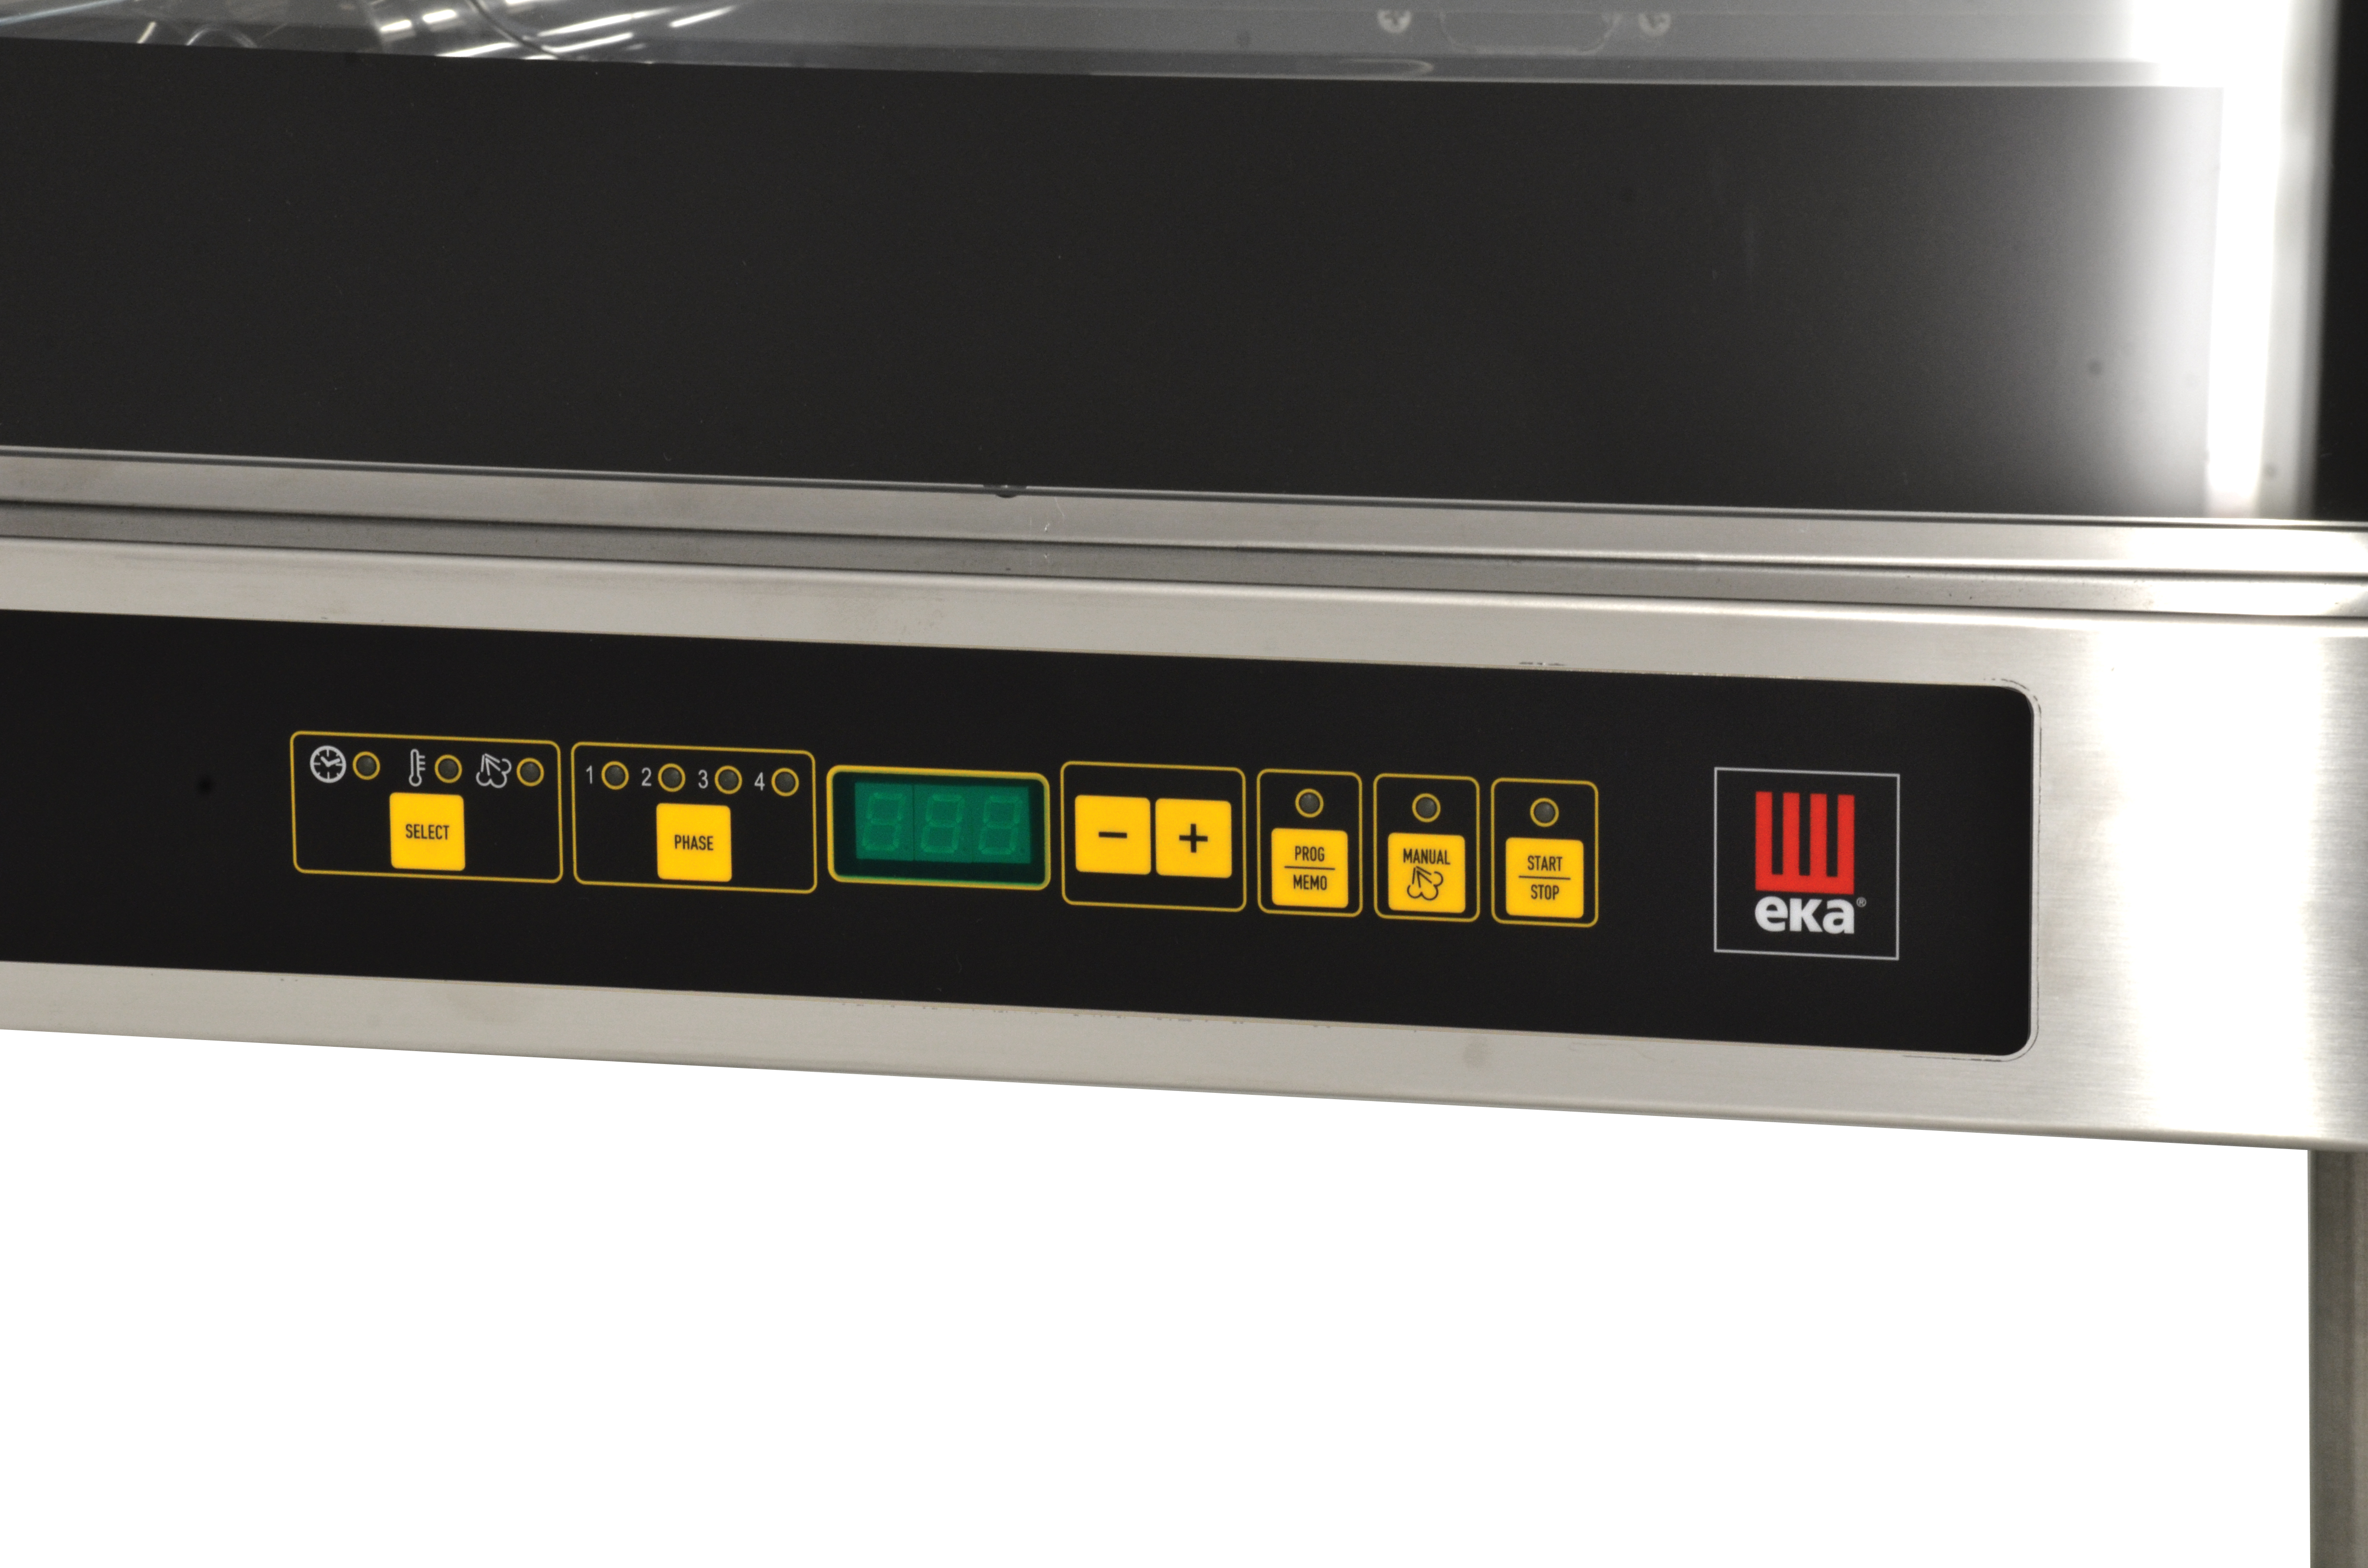 Countertop Electric Convection Oven With 3 Shelves Capacity And Wiring Diagram Steam Injection